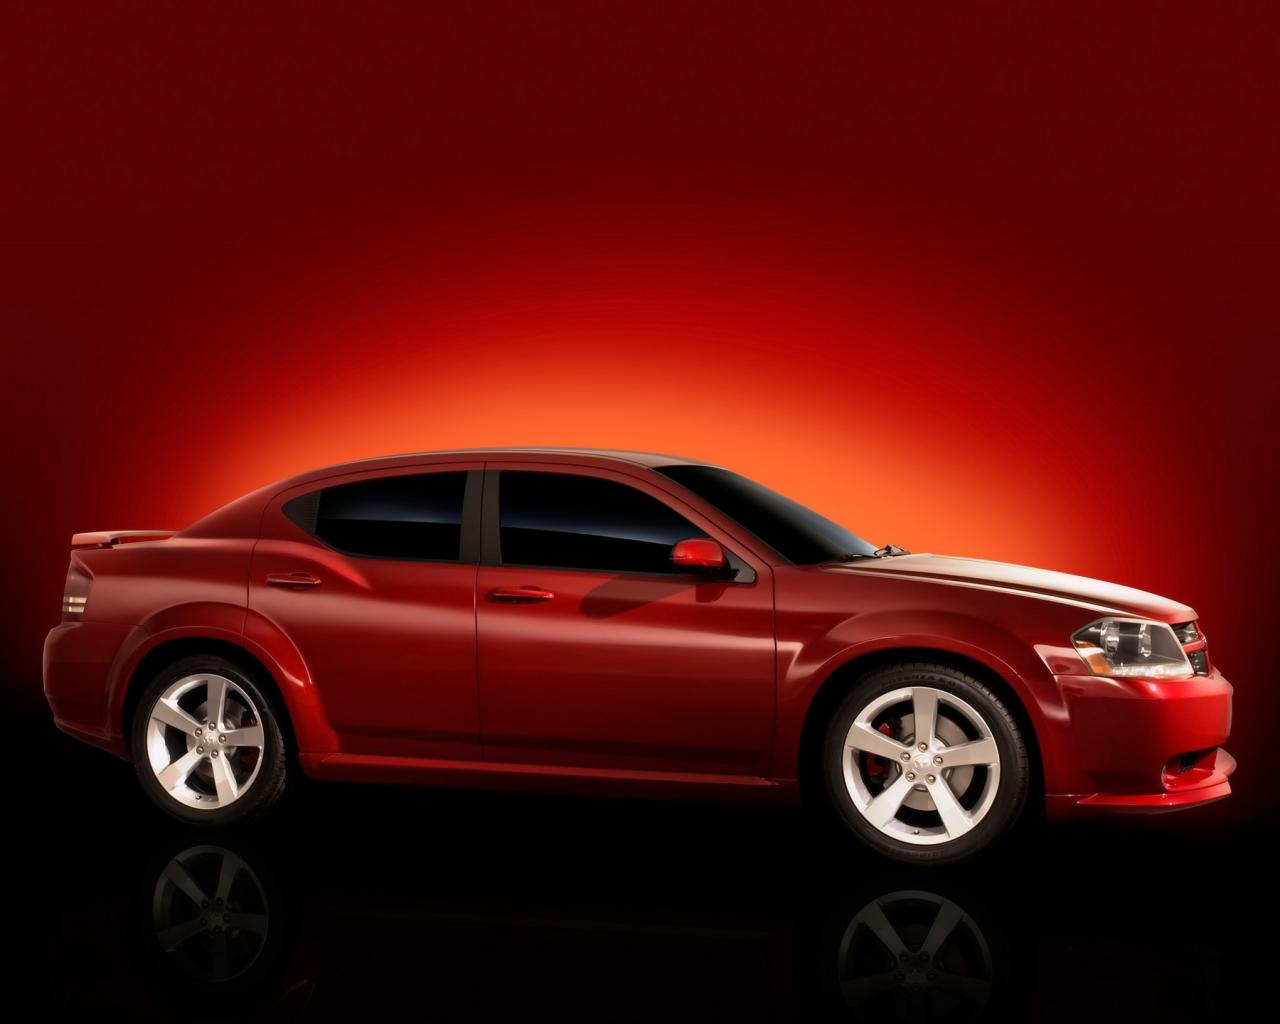 2006 Dodge Avenger Concept Side 1280x1024